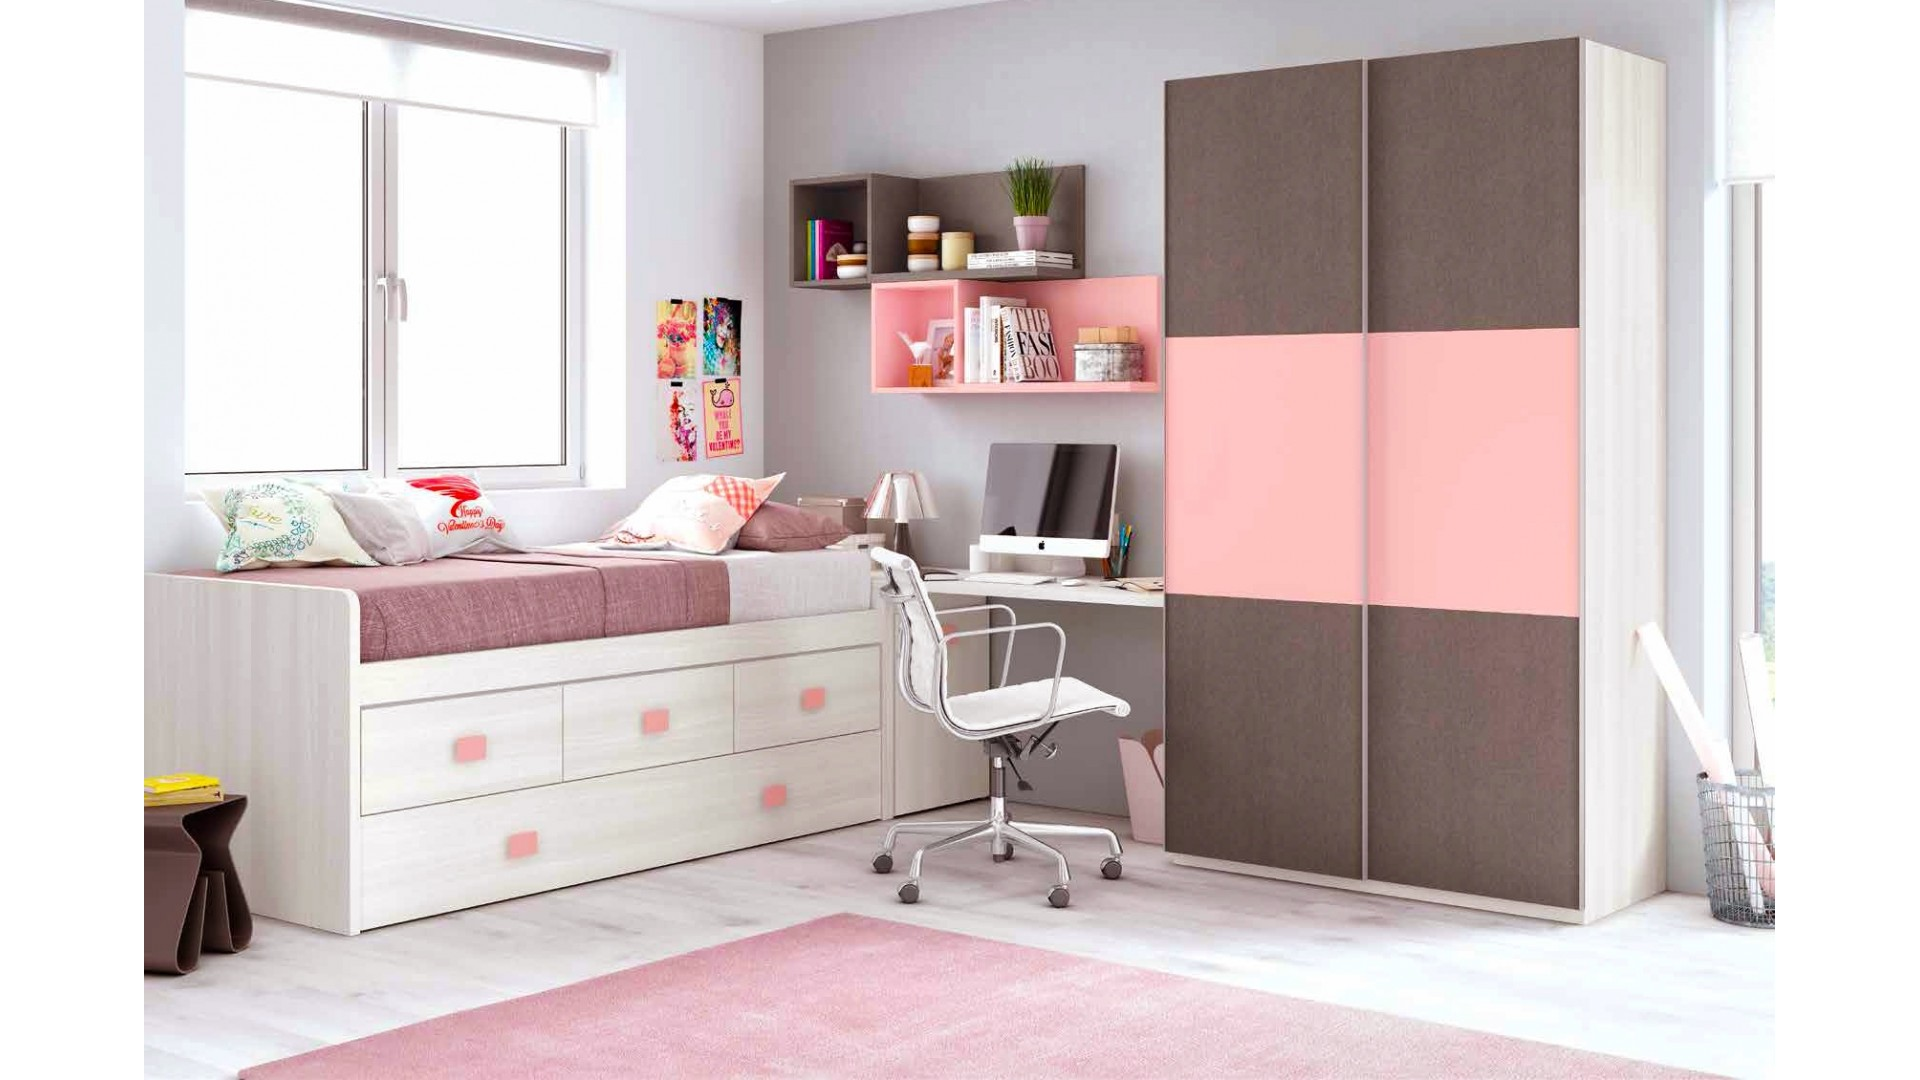 chambre fille rose avec une armoire coulissante glicerio so nuit. Black Bedroom Furniture Sets. Home Design Ideas